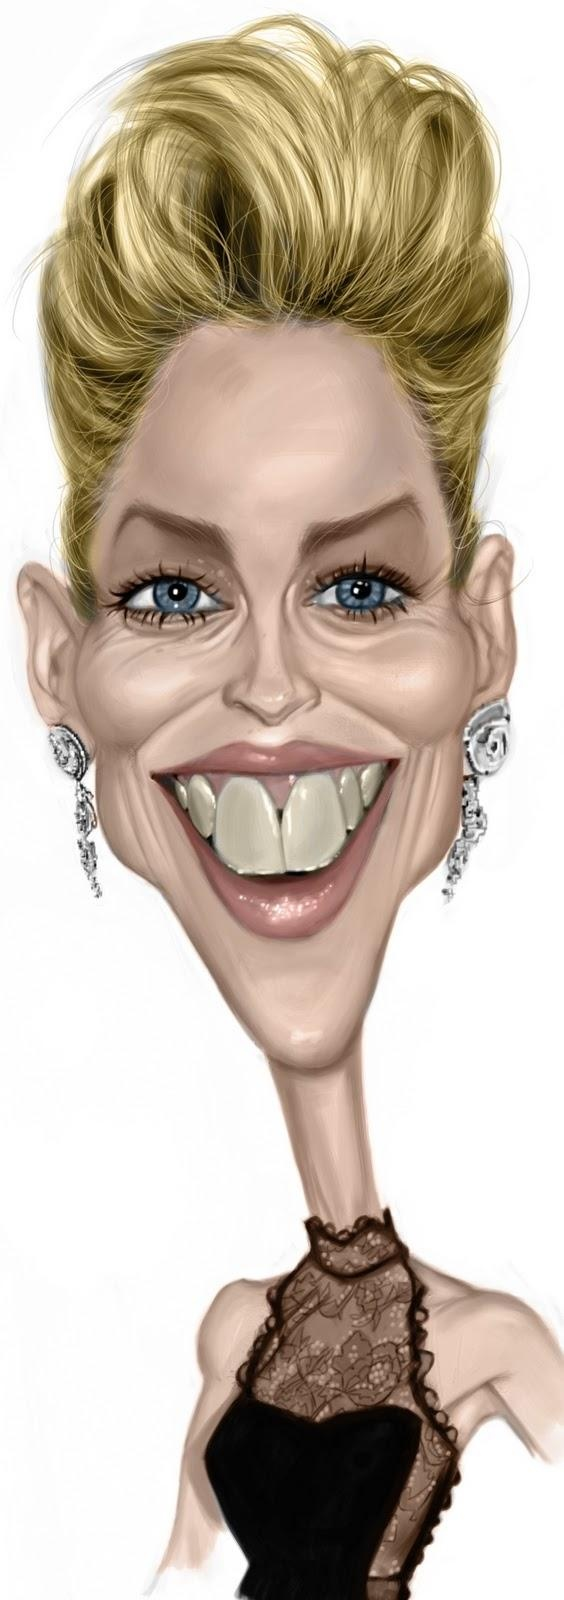 Britney Spears | Celebrities in 2019 | Caricature ...